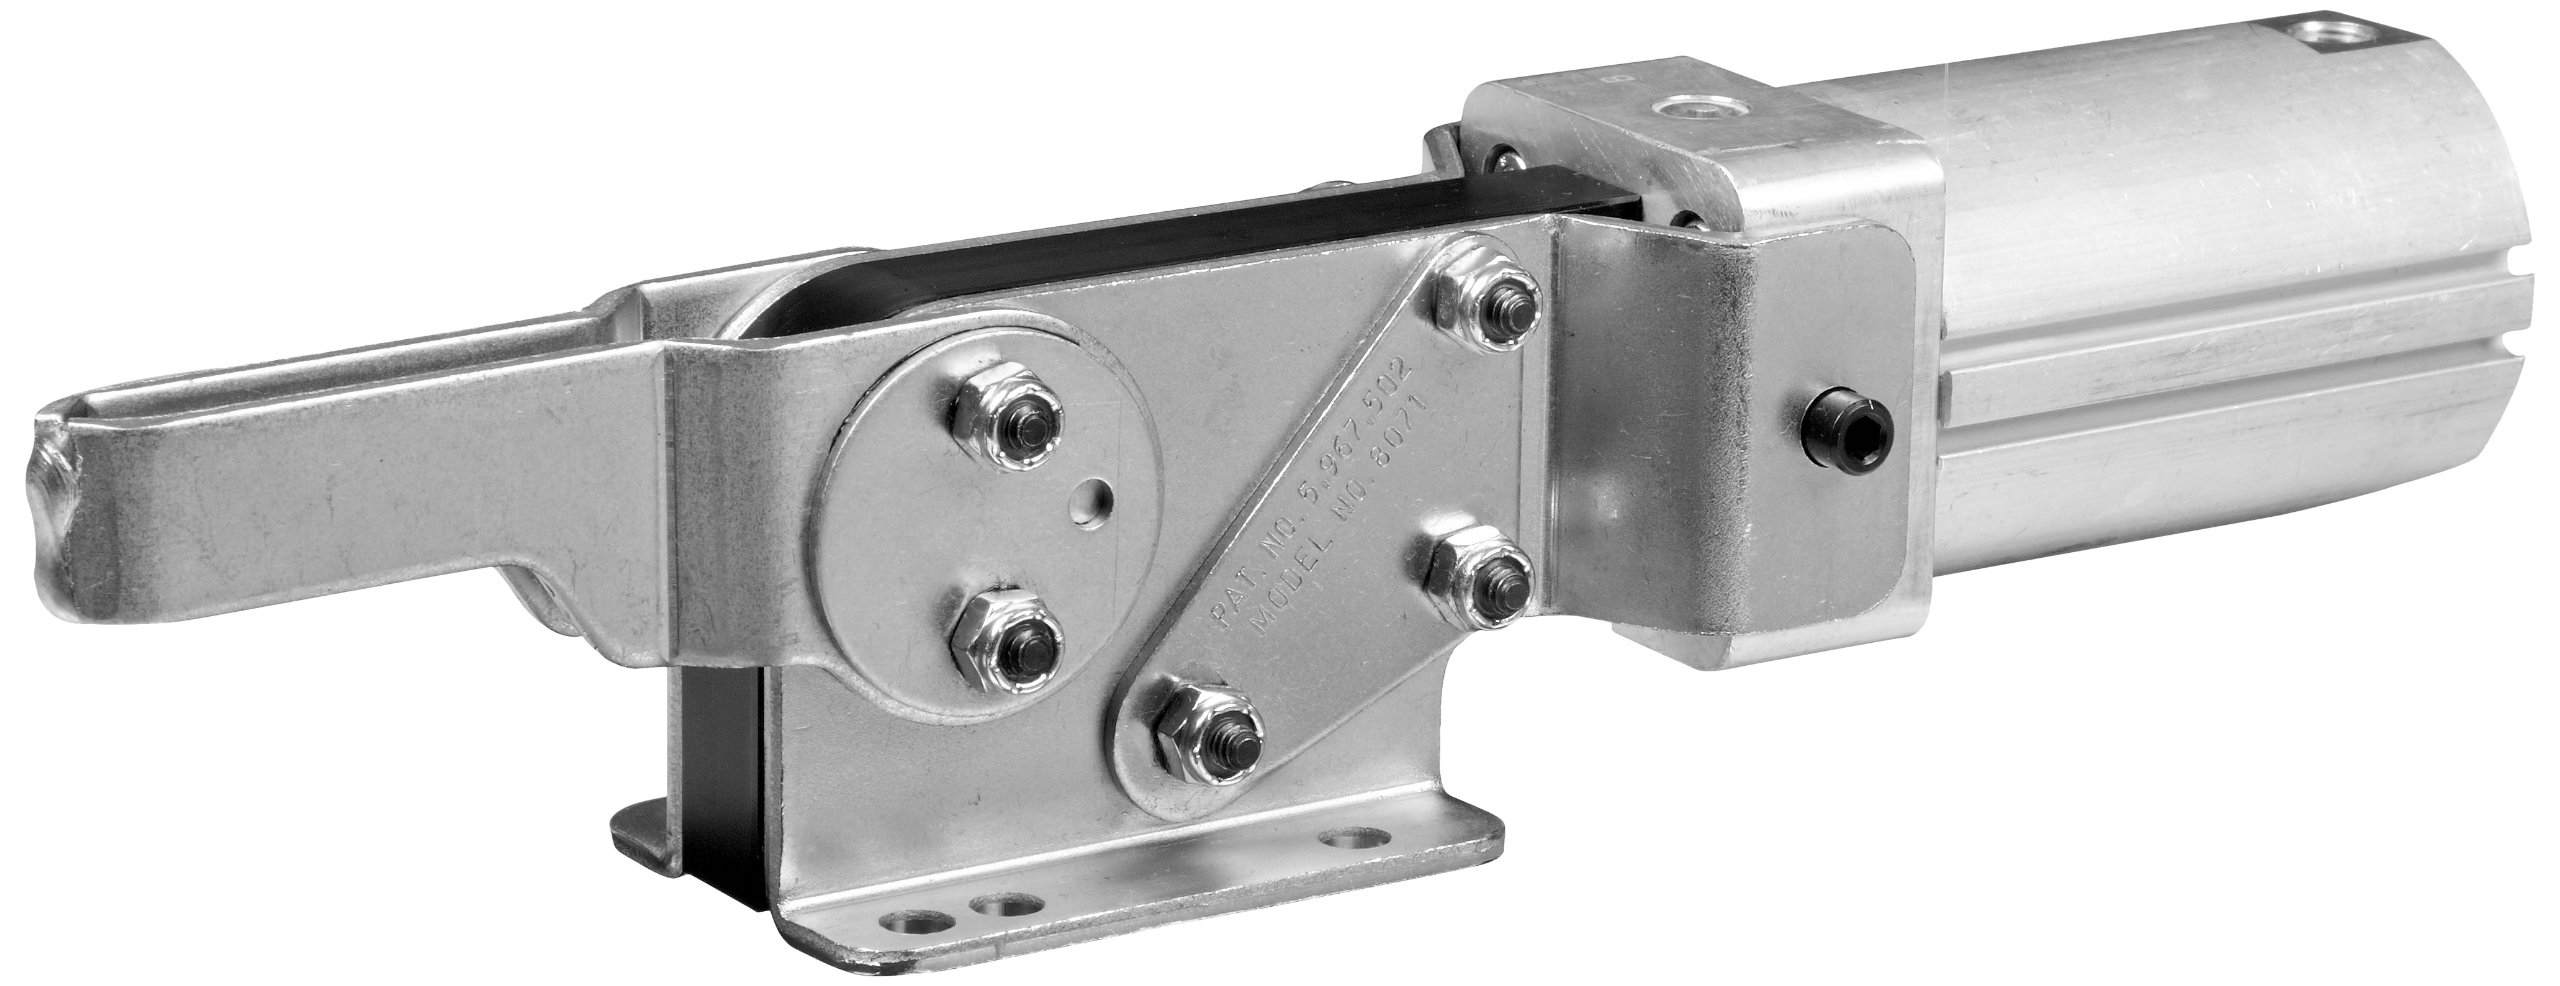 DE-STA-CO 8071 Enclosed Pneumatic Hold Down Action Clamp